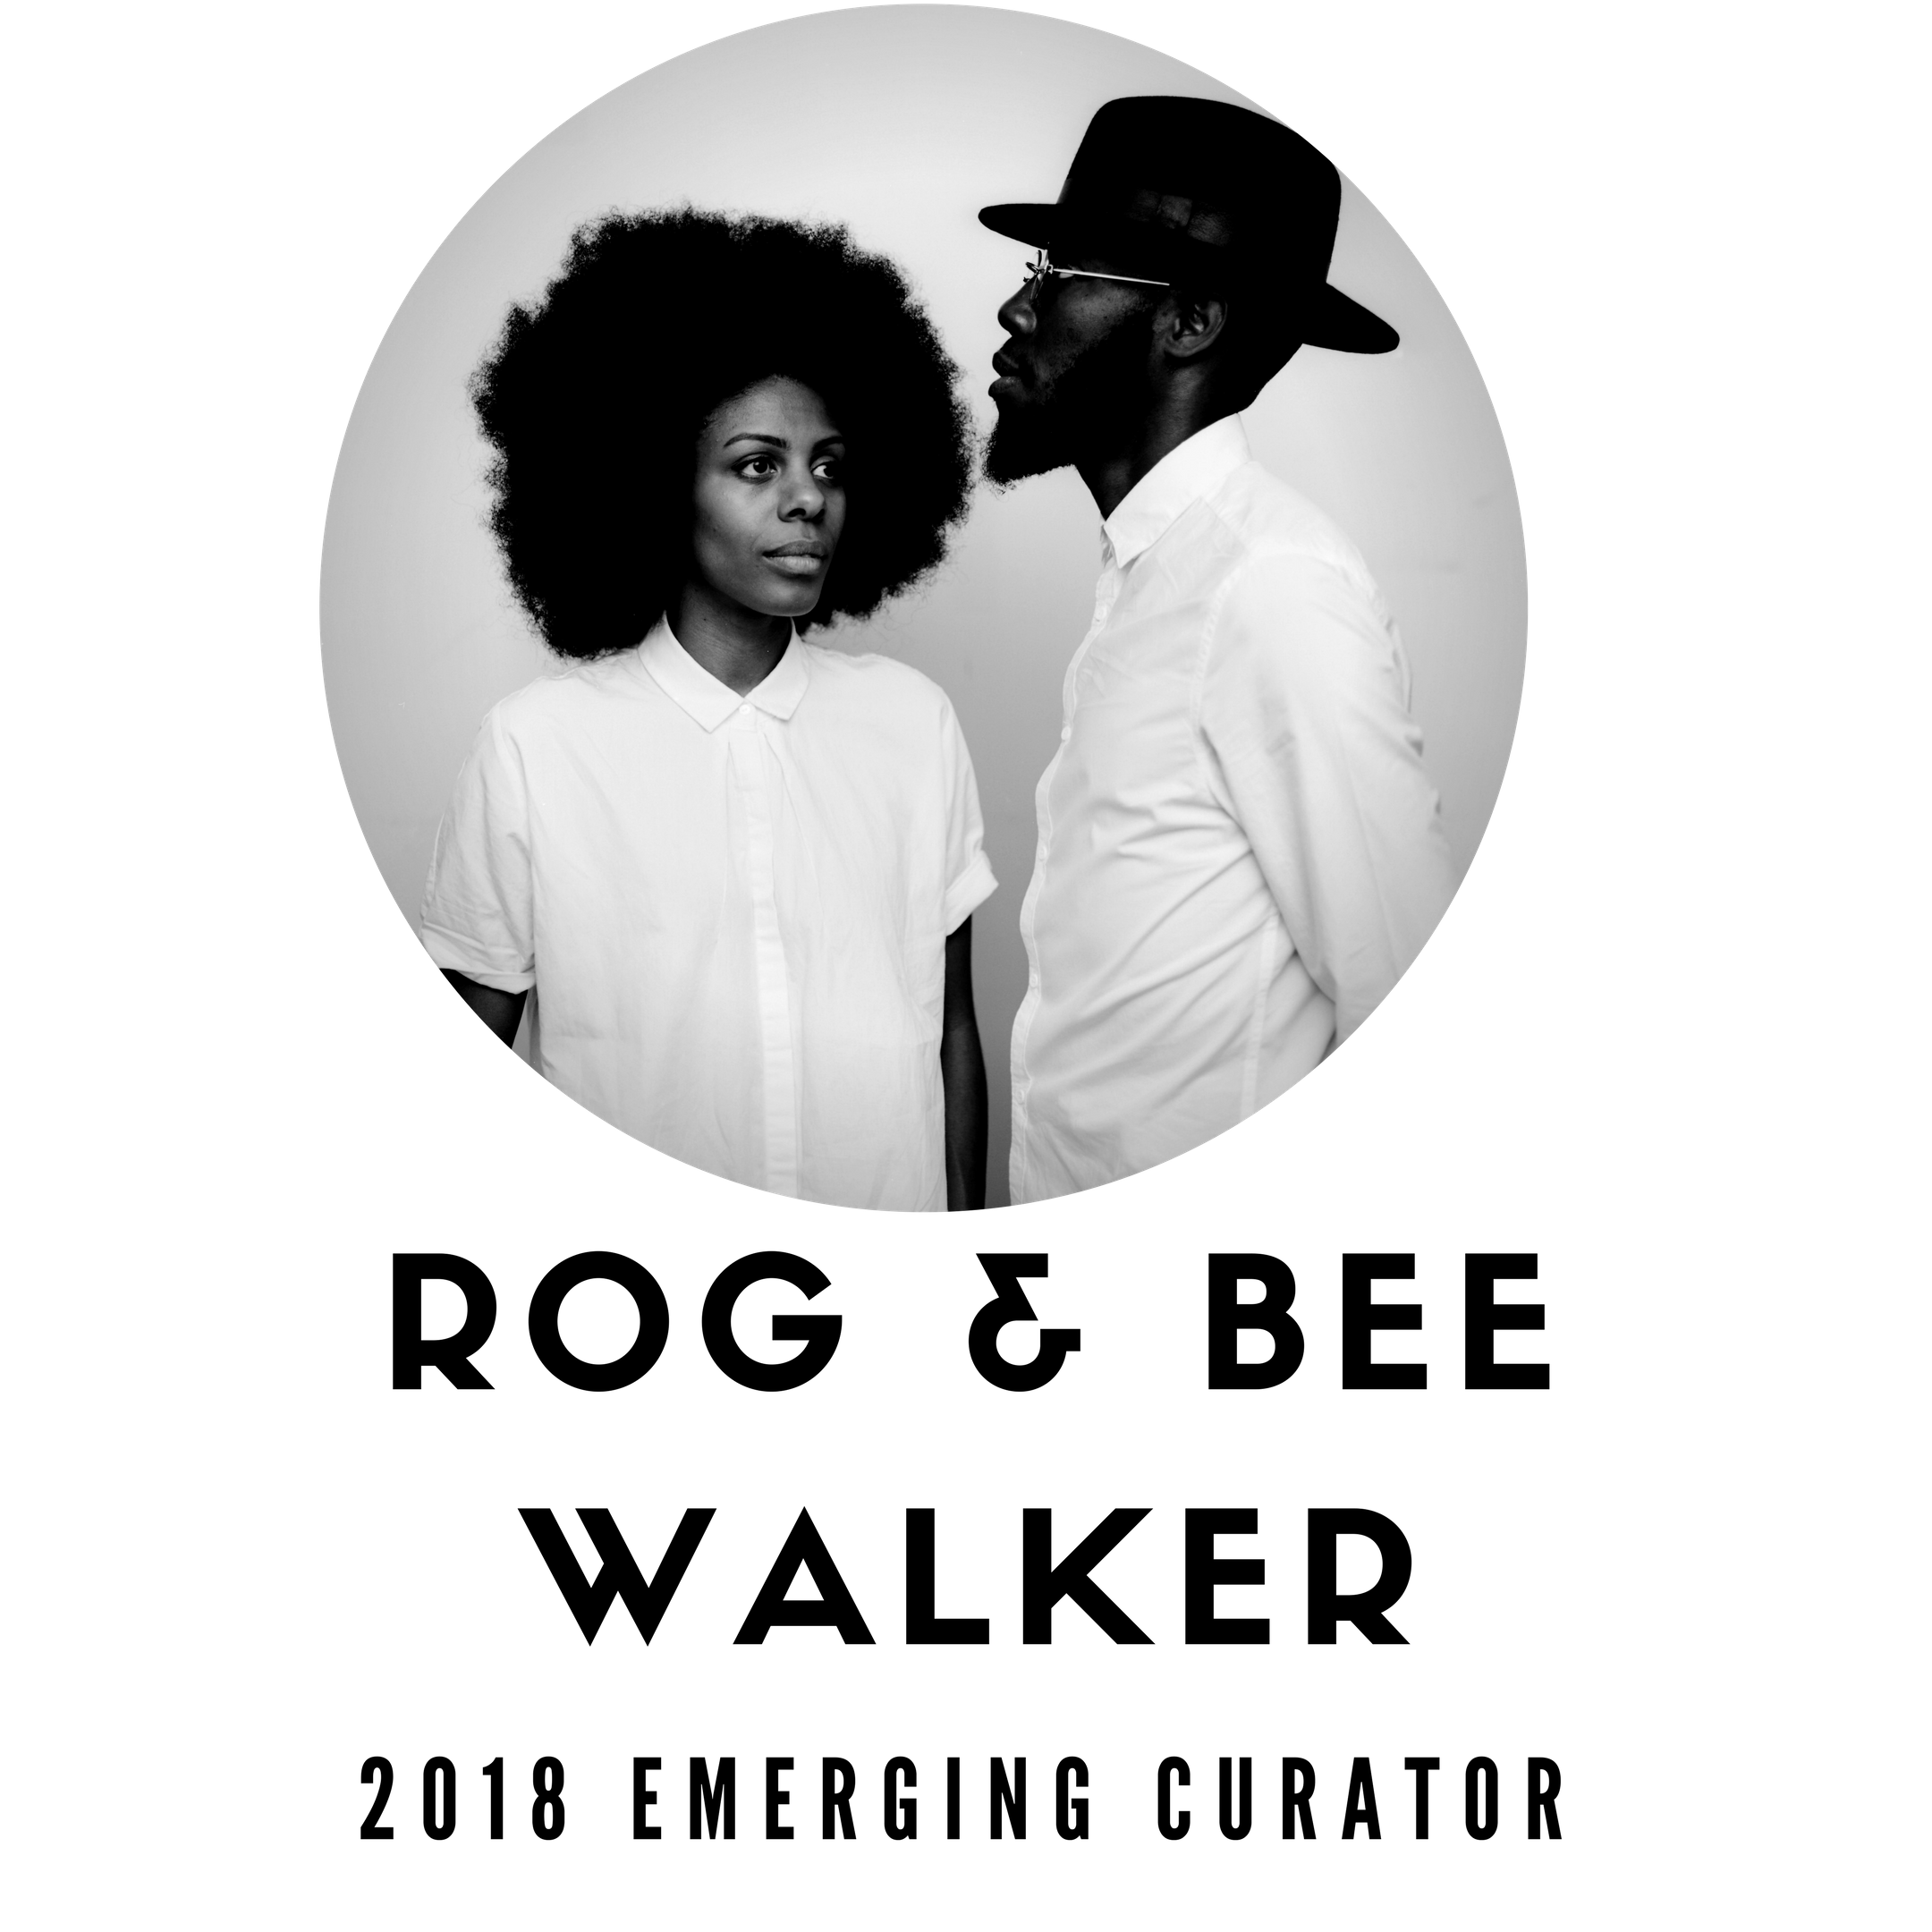 Rog and Bee Walker are a NYC based photographic duo. Together they direct Paper Monday, a visual storytelling and research project that explores identities and creative experiences within culture.